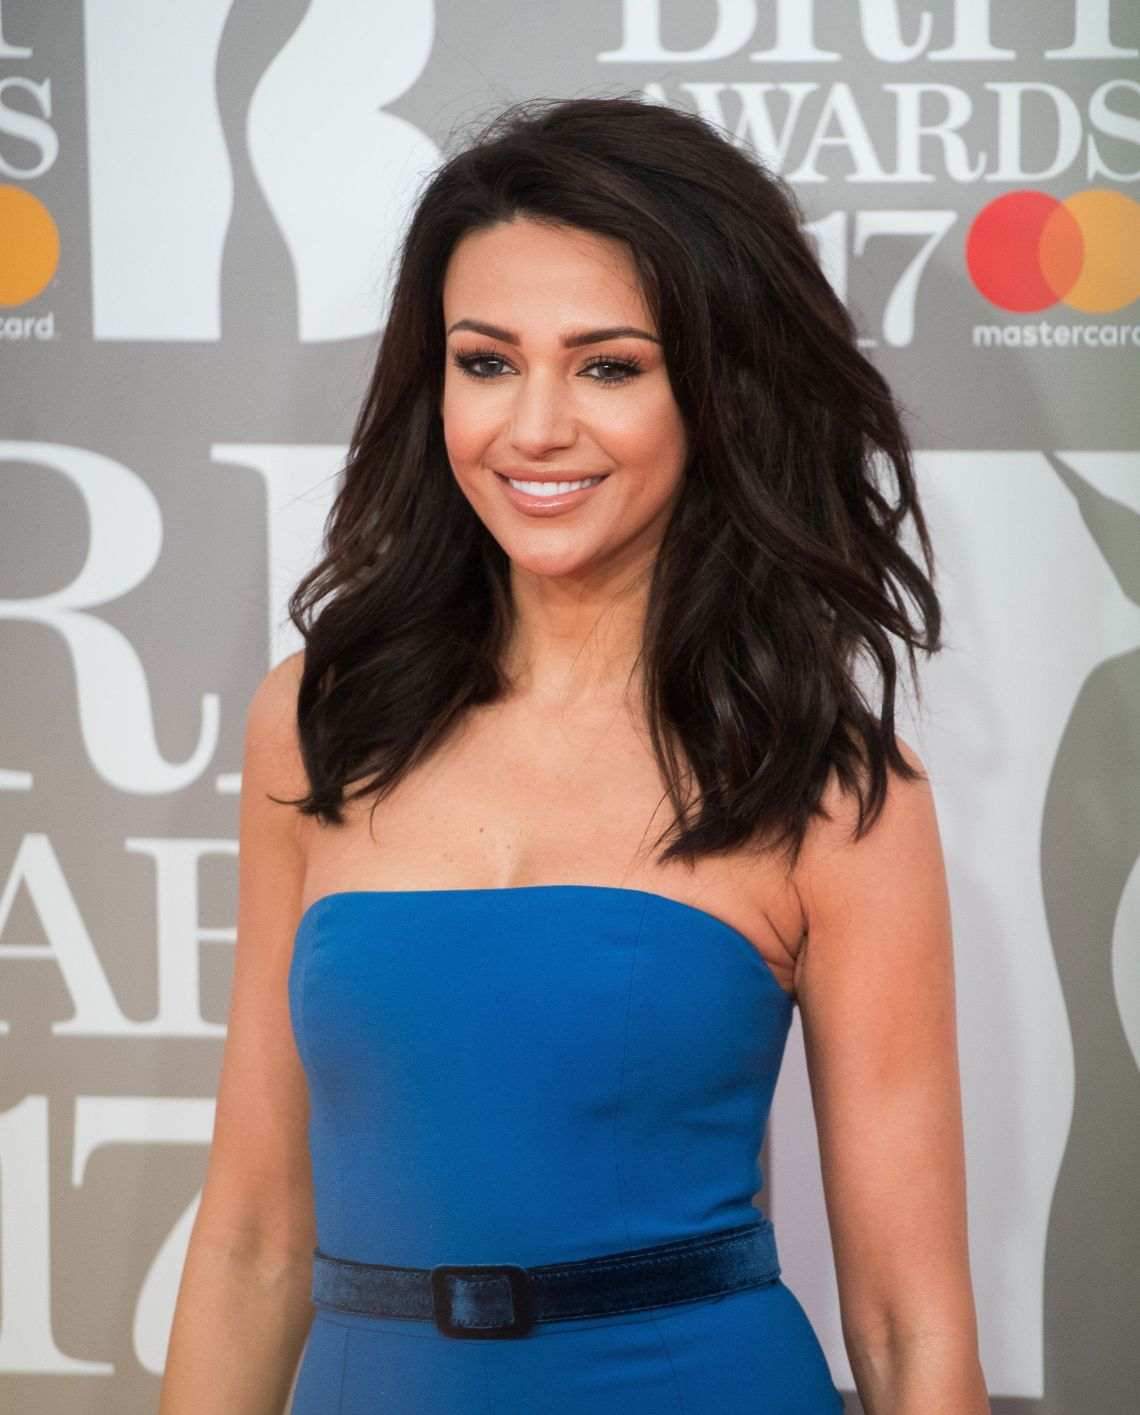 'Strictly' did wonders for Michelle's husband Mark Wright's profile when he made the 2014 final. The former 'Corrie' star and 'Our Girl' actress has been rumoured to be at the top of 'Strictly' bosses' wish-list for the last few years, so will we finally see her take to the dance floor in 2018?